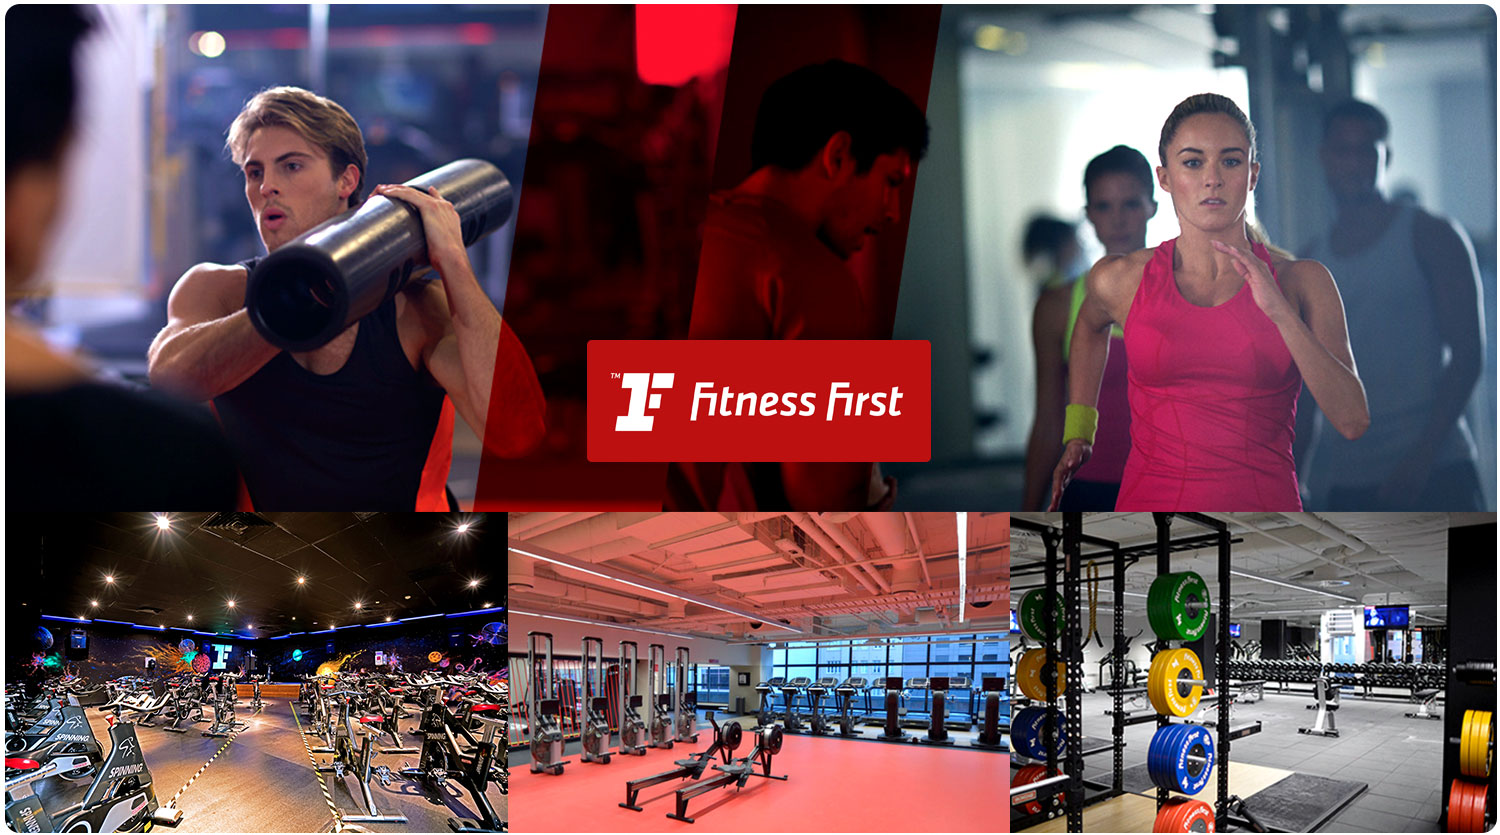 Start your Fitness Journey with Fitness First with only $14.95 for 14 days at Fitness First Melbourne VIC. Experience our first class gym and freestyle classes inc. Zumba, Pilates, Yoga, Boxing, Les Mills and more. Take the first step with Fitness First Melbourne VIC.